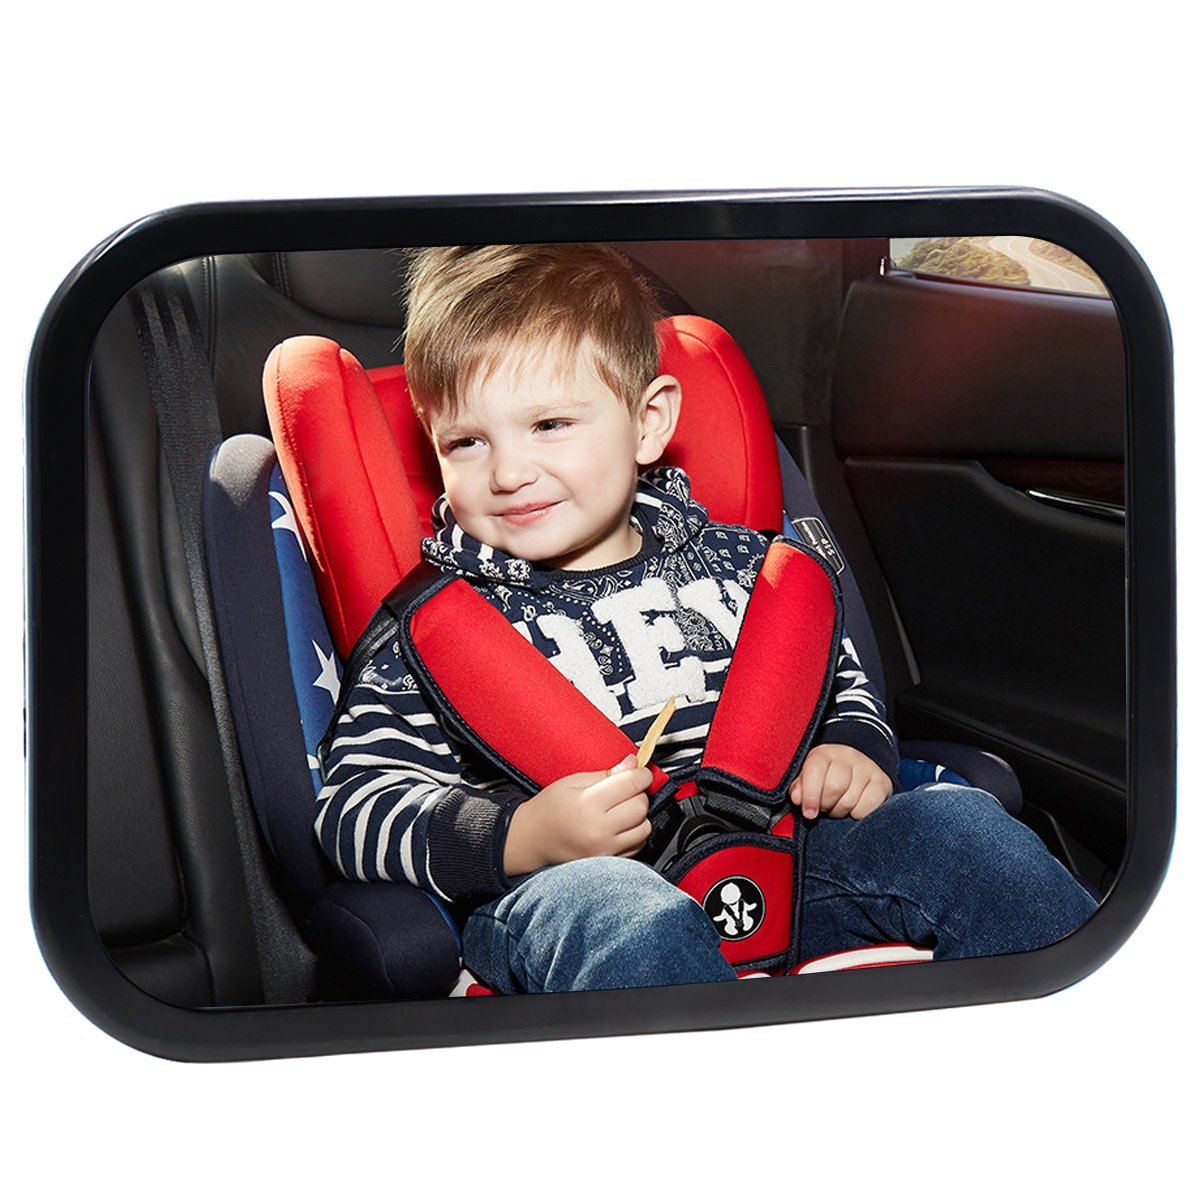 Baby Back Seat Car Mirror View Rear Facing by Hippih, No Headrest Expanded View